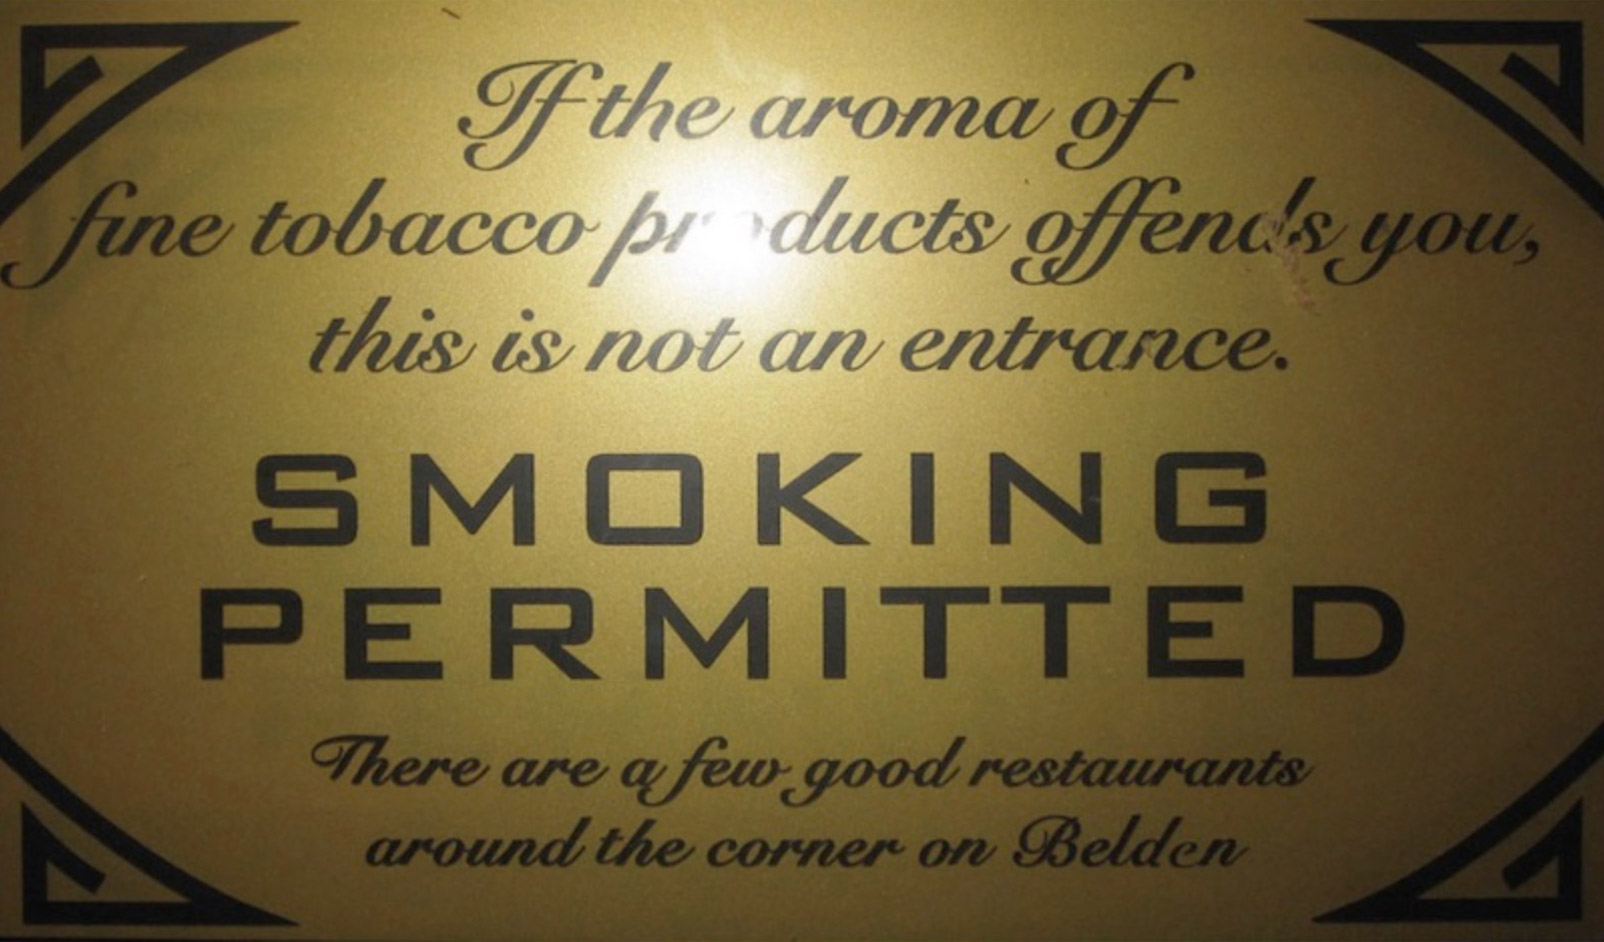 If the aroma of fine tobacco products offends you, this is not an entrance. SMOKING PERMITTED. There are a few good restaurants around the corner on Belden.